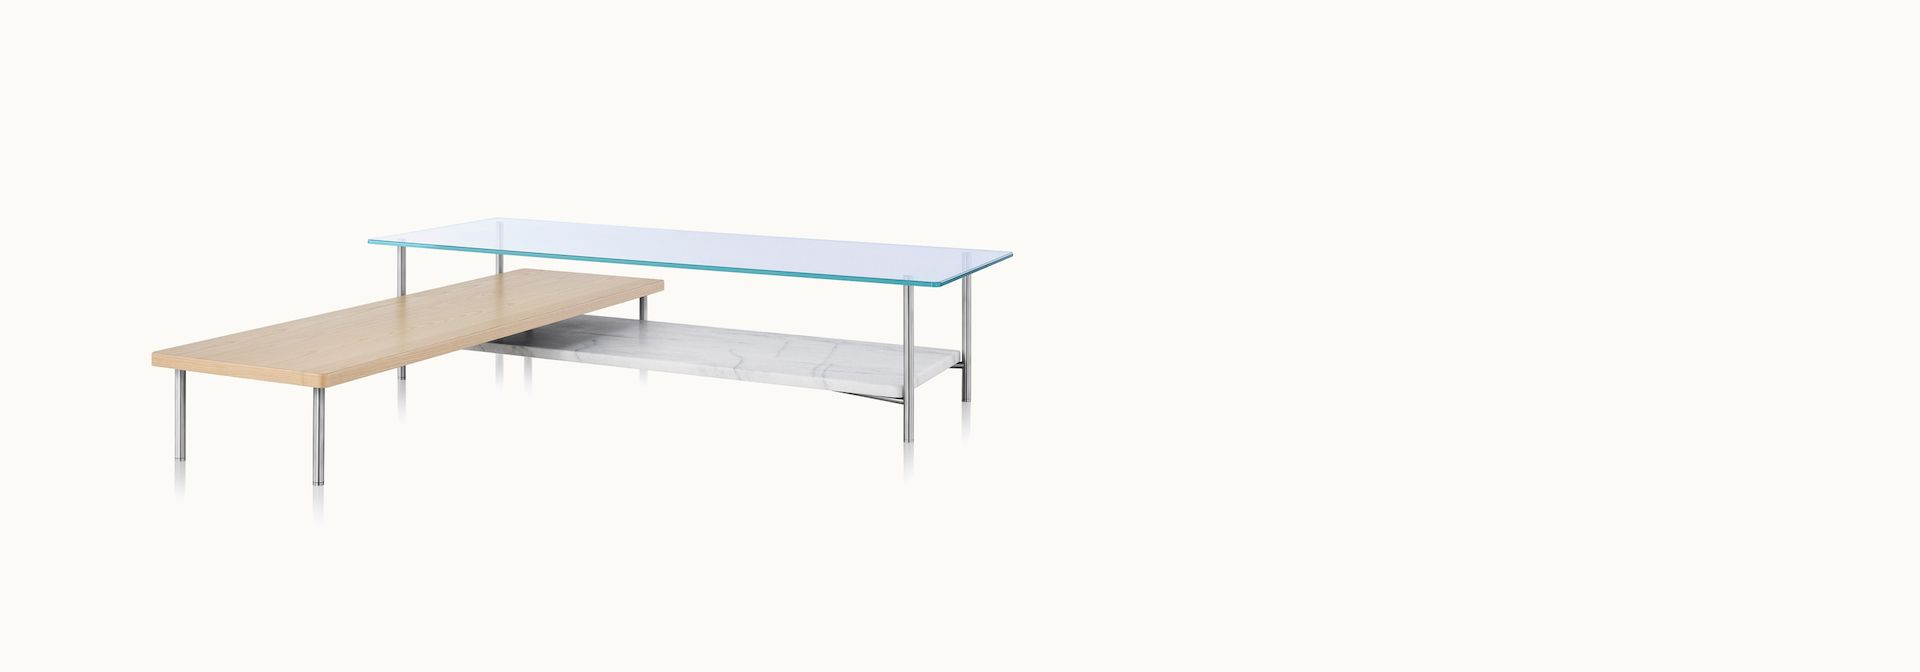 - Geiger Layer Table Table, L Shaped Coffee Table, Home Decor